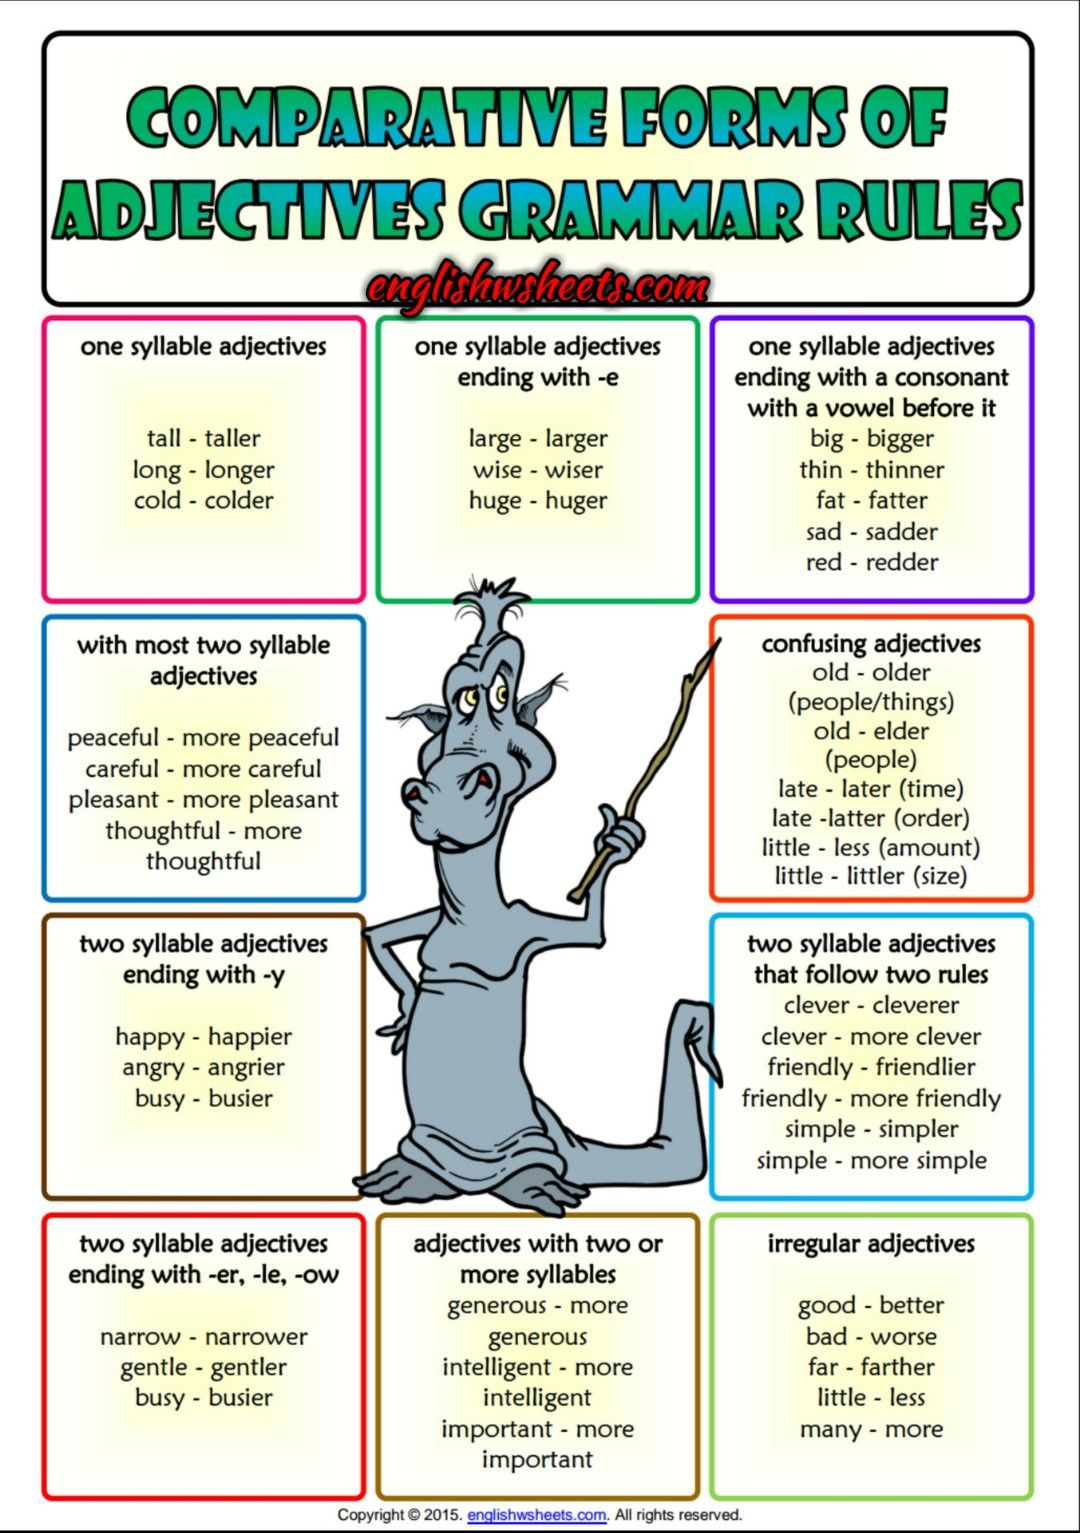 Comparatives Rules Esl Printable Classroom Poster For Kids